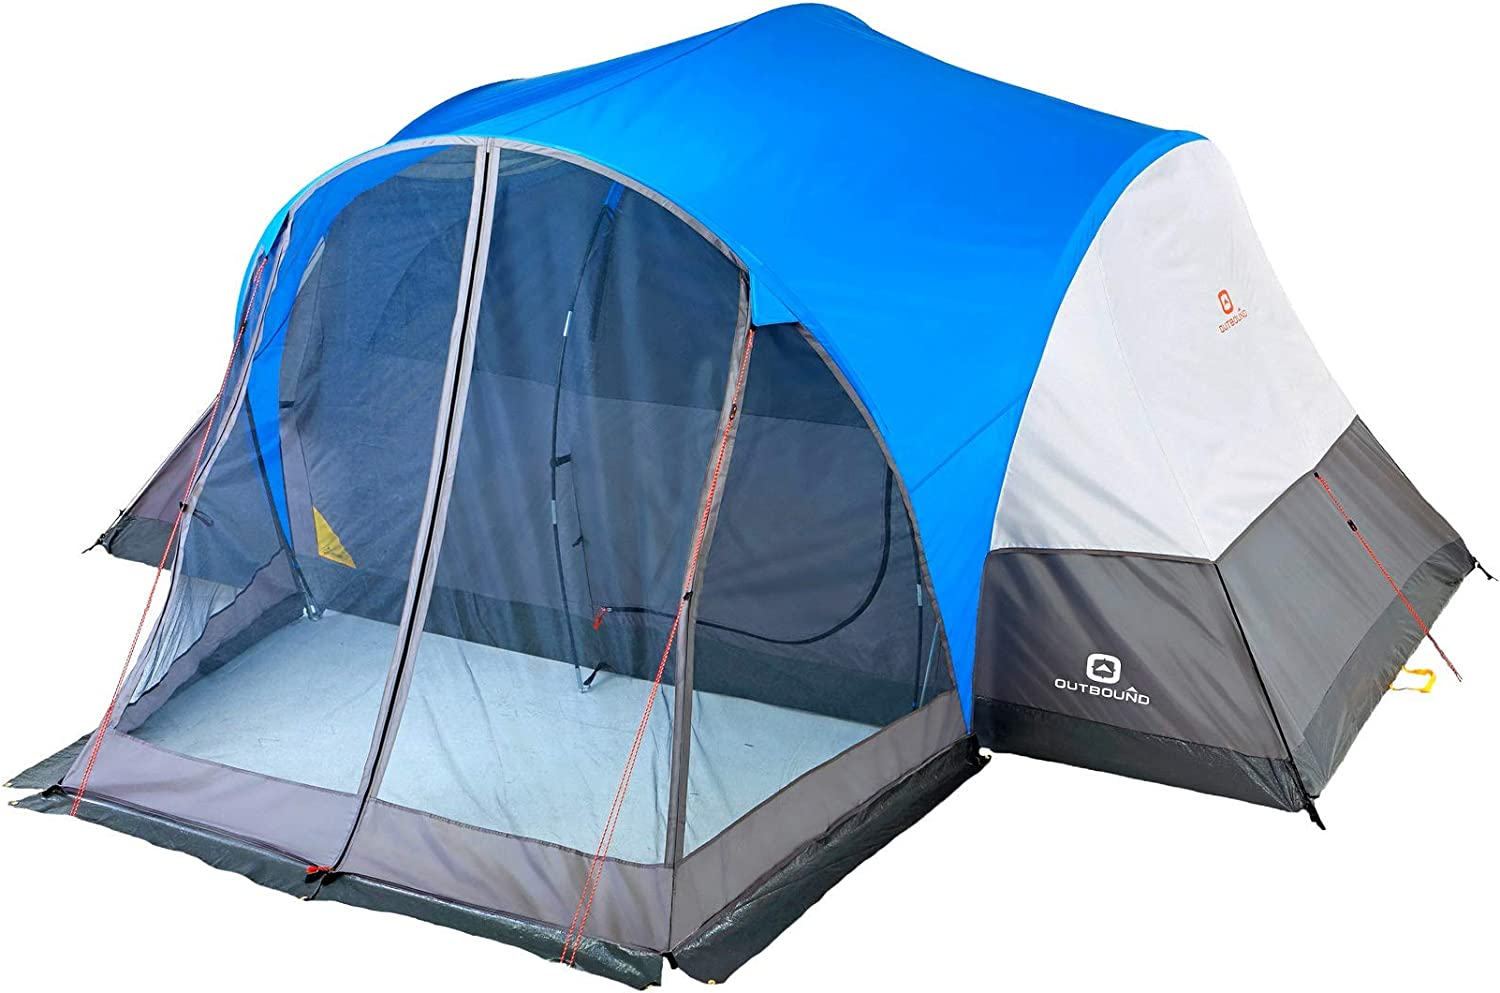 Outbound 8-Person Tent with Screen Porch